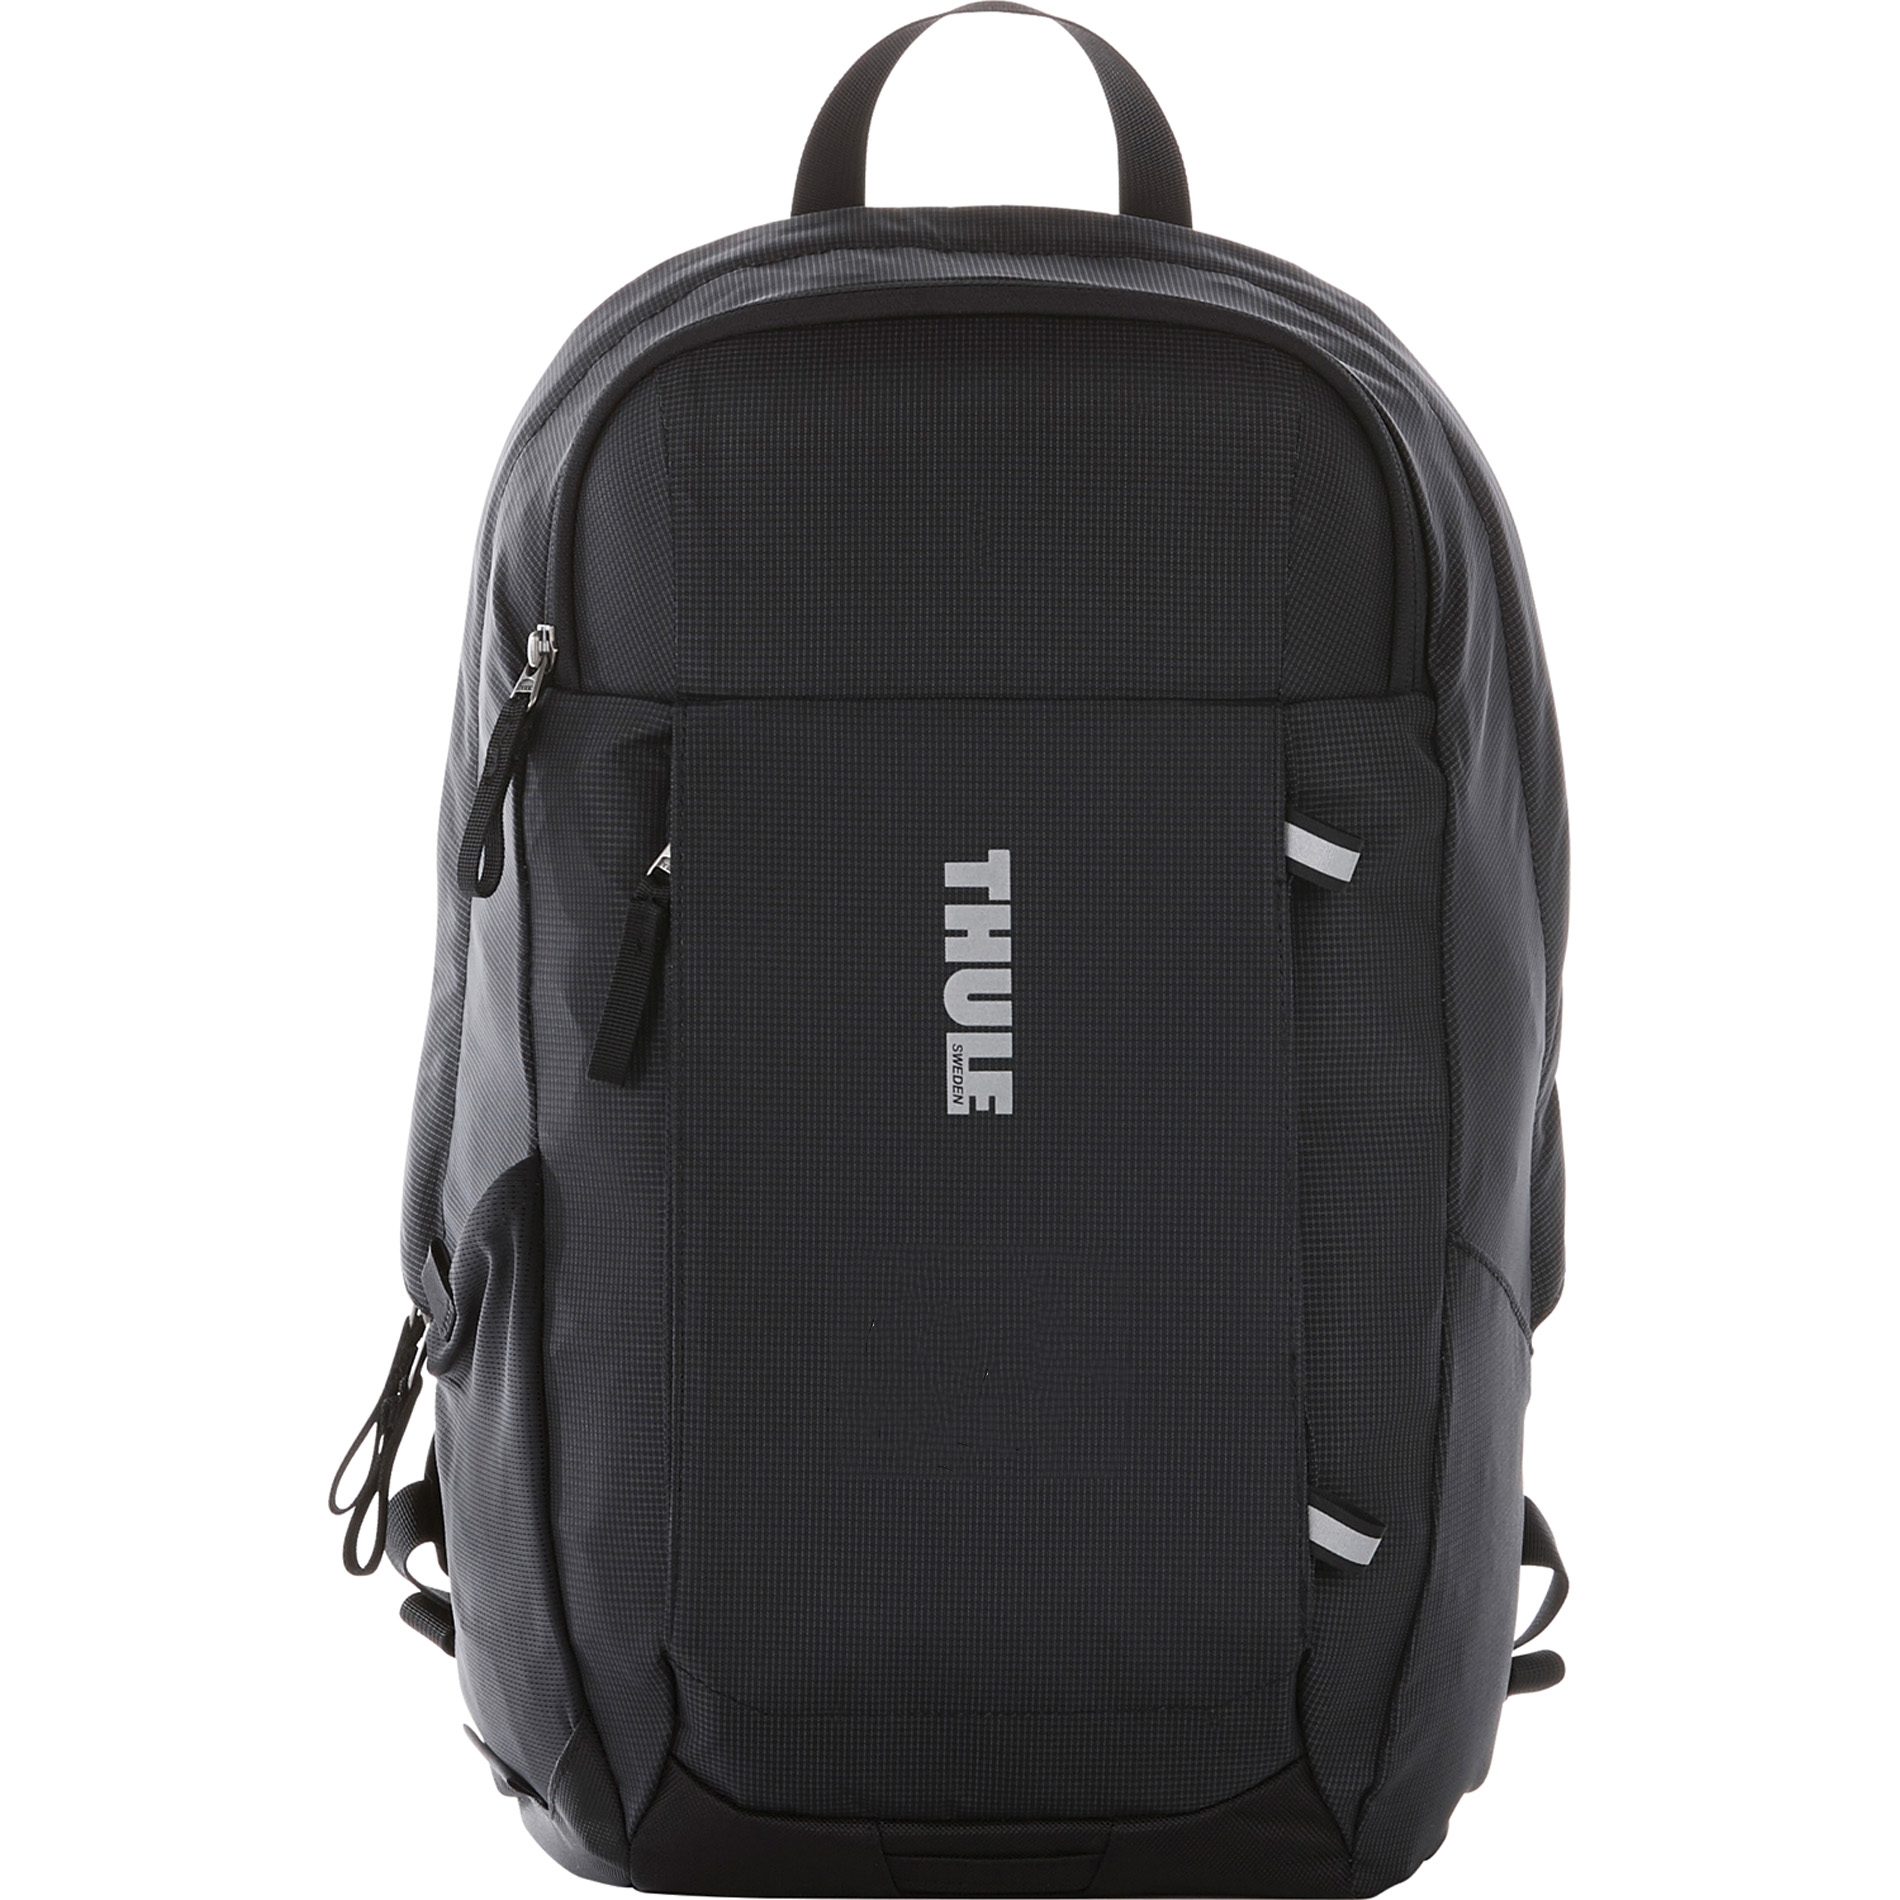 "Thule 9020-13 - EnRoute 15"" Laptop Backpack"